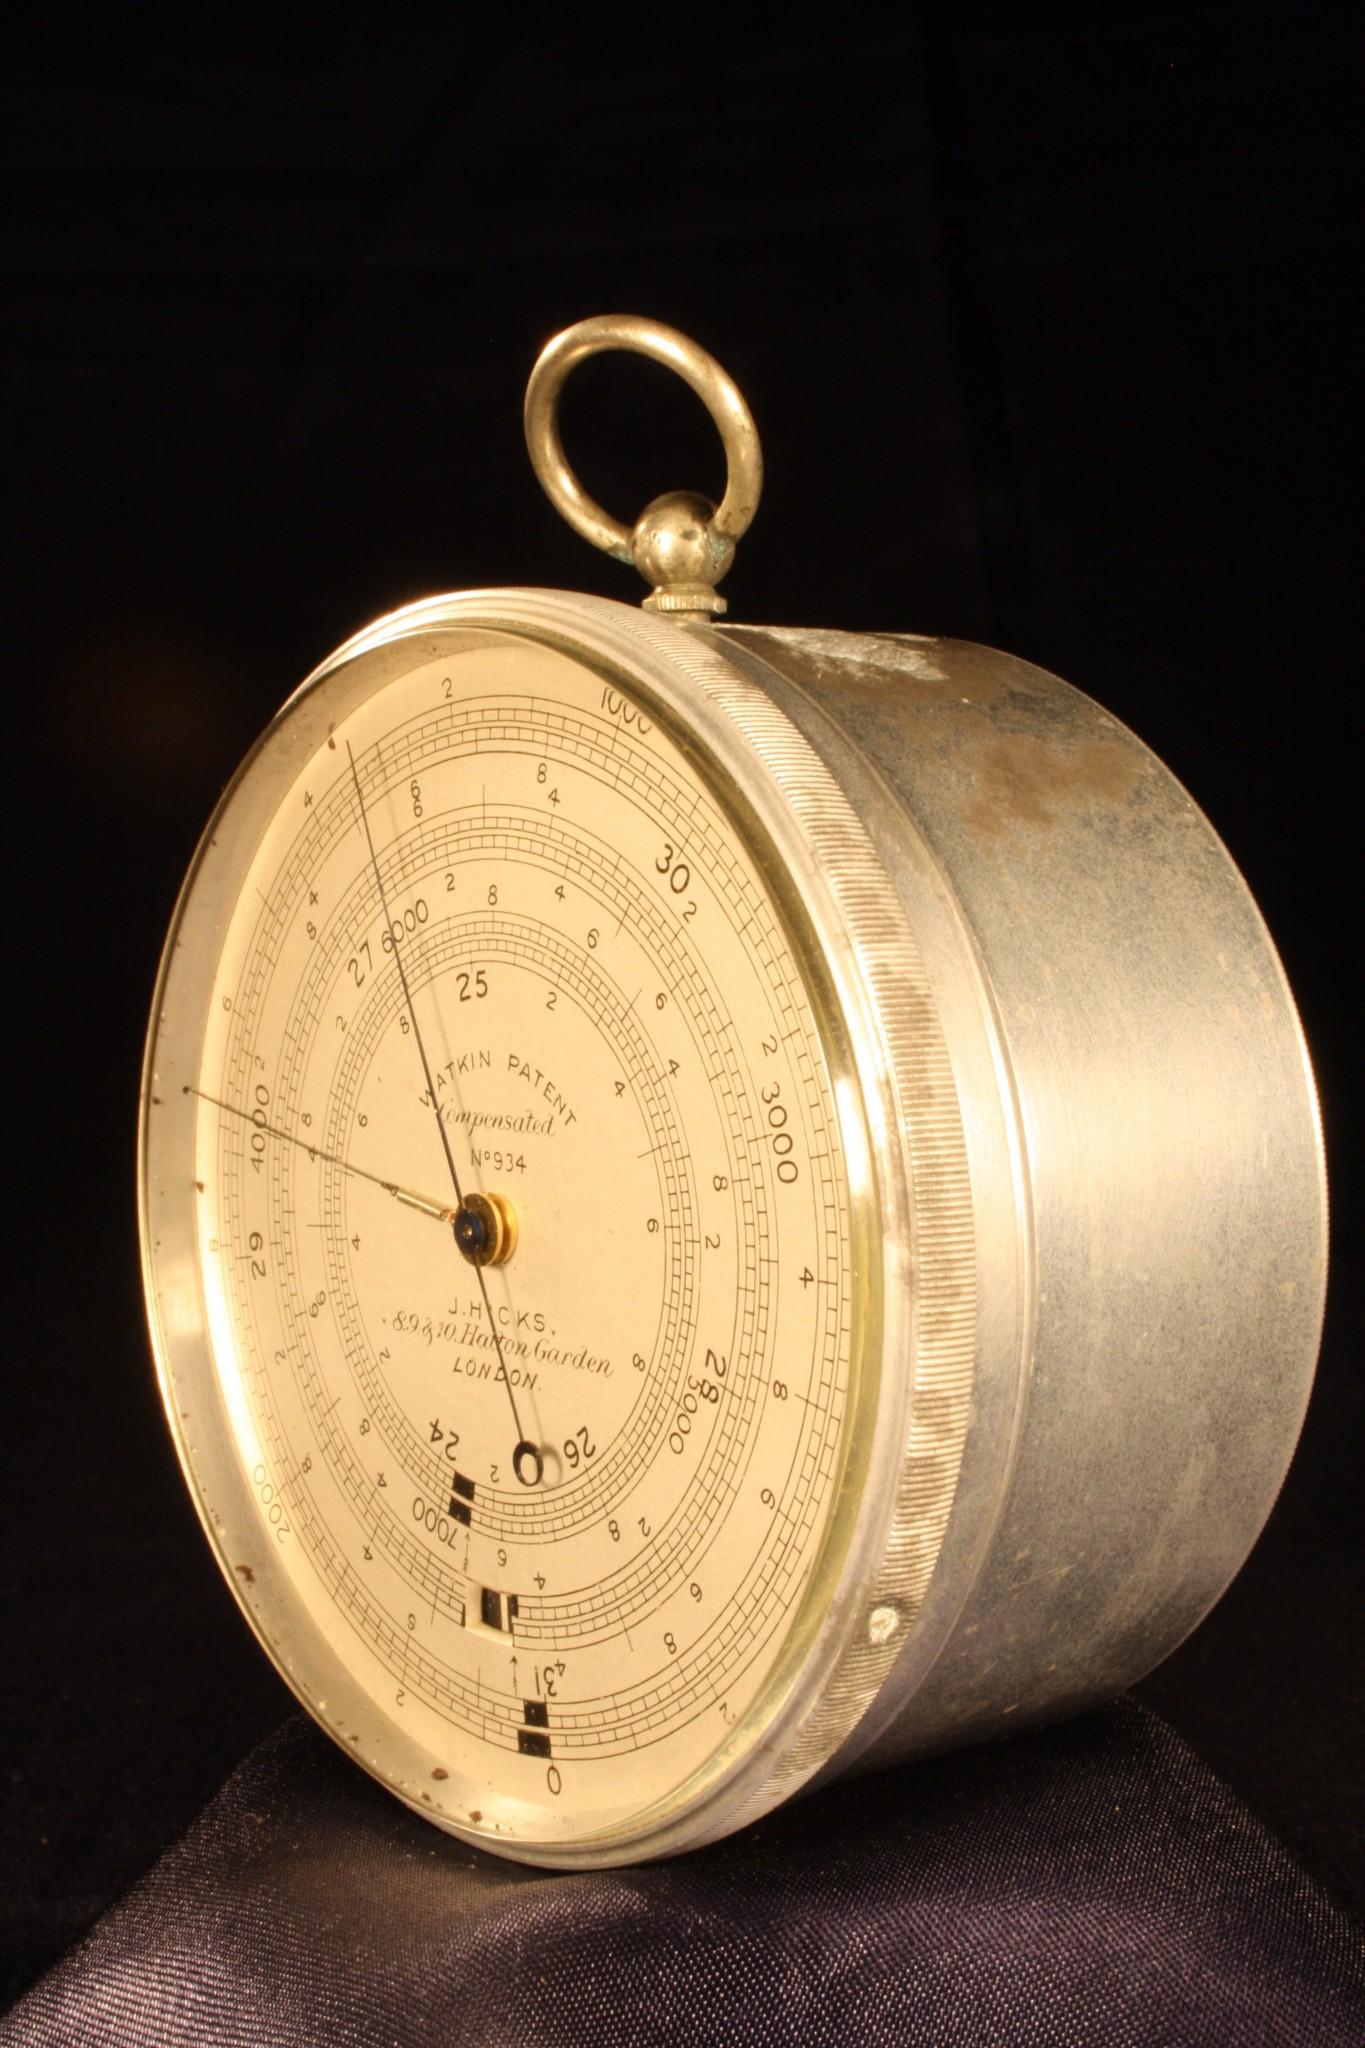 Image of Watkin Patent Altimeter by Hicks No 934